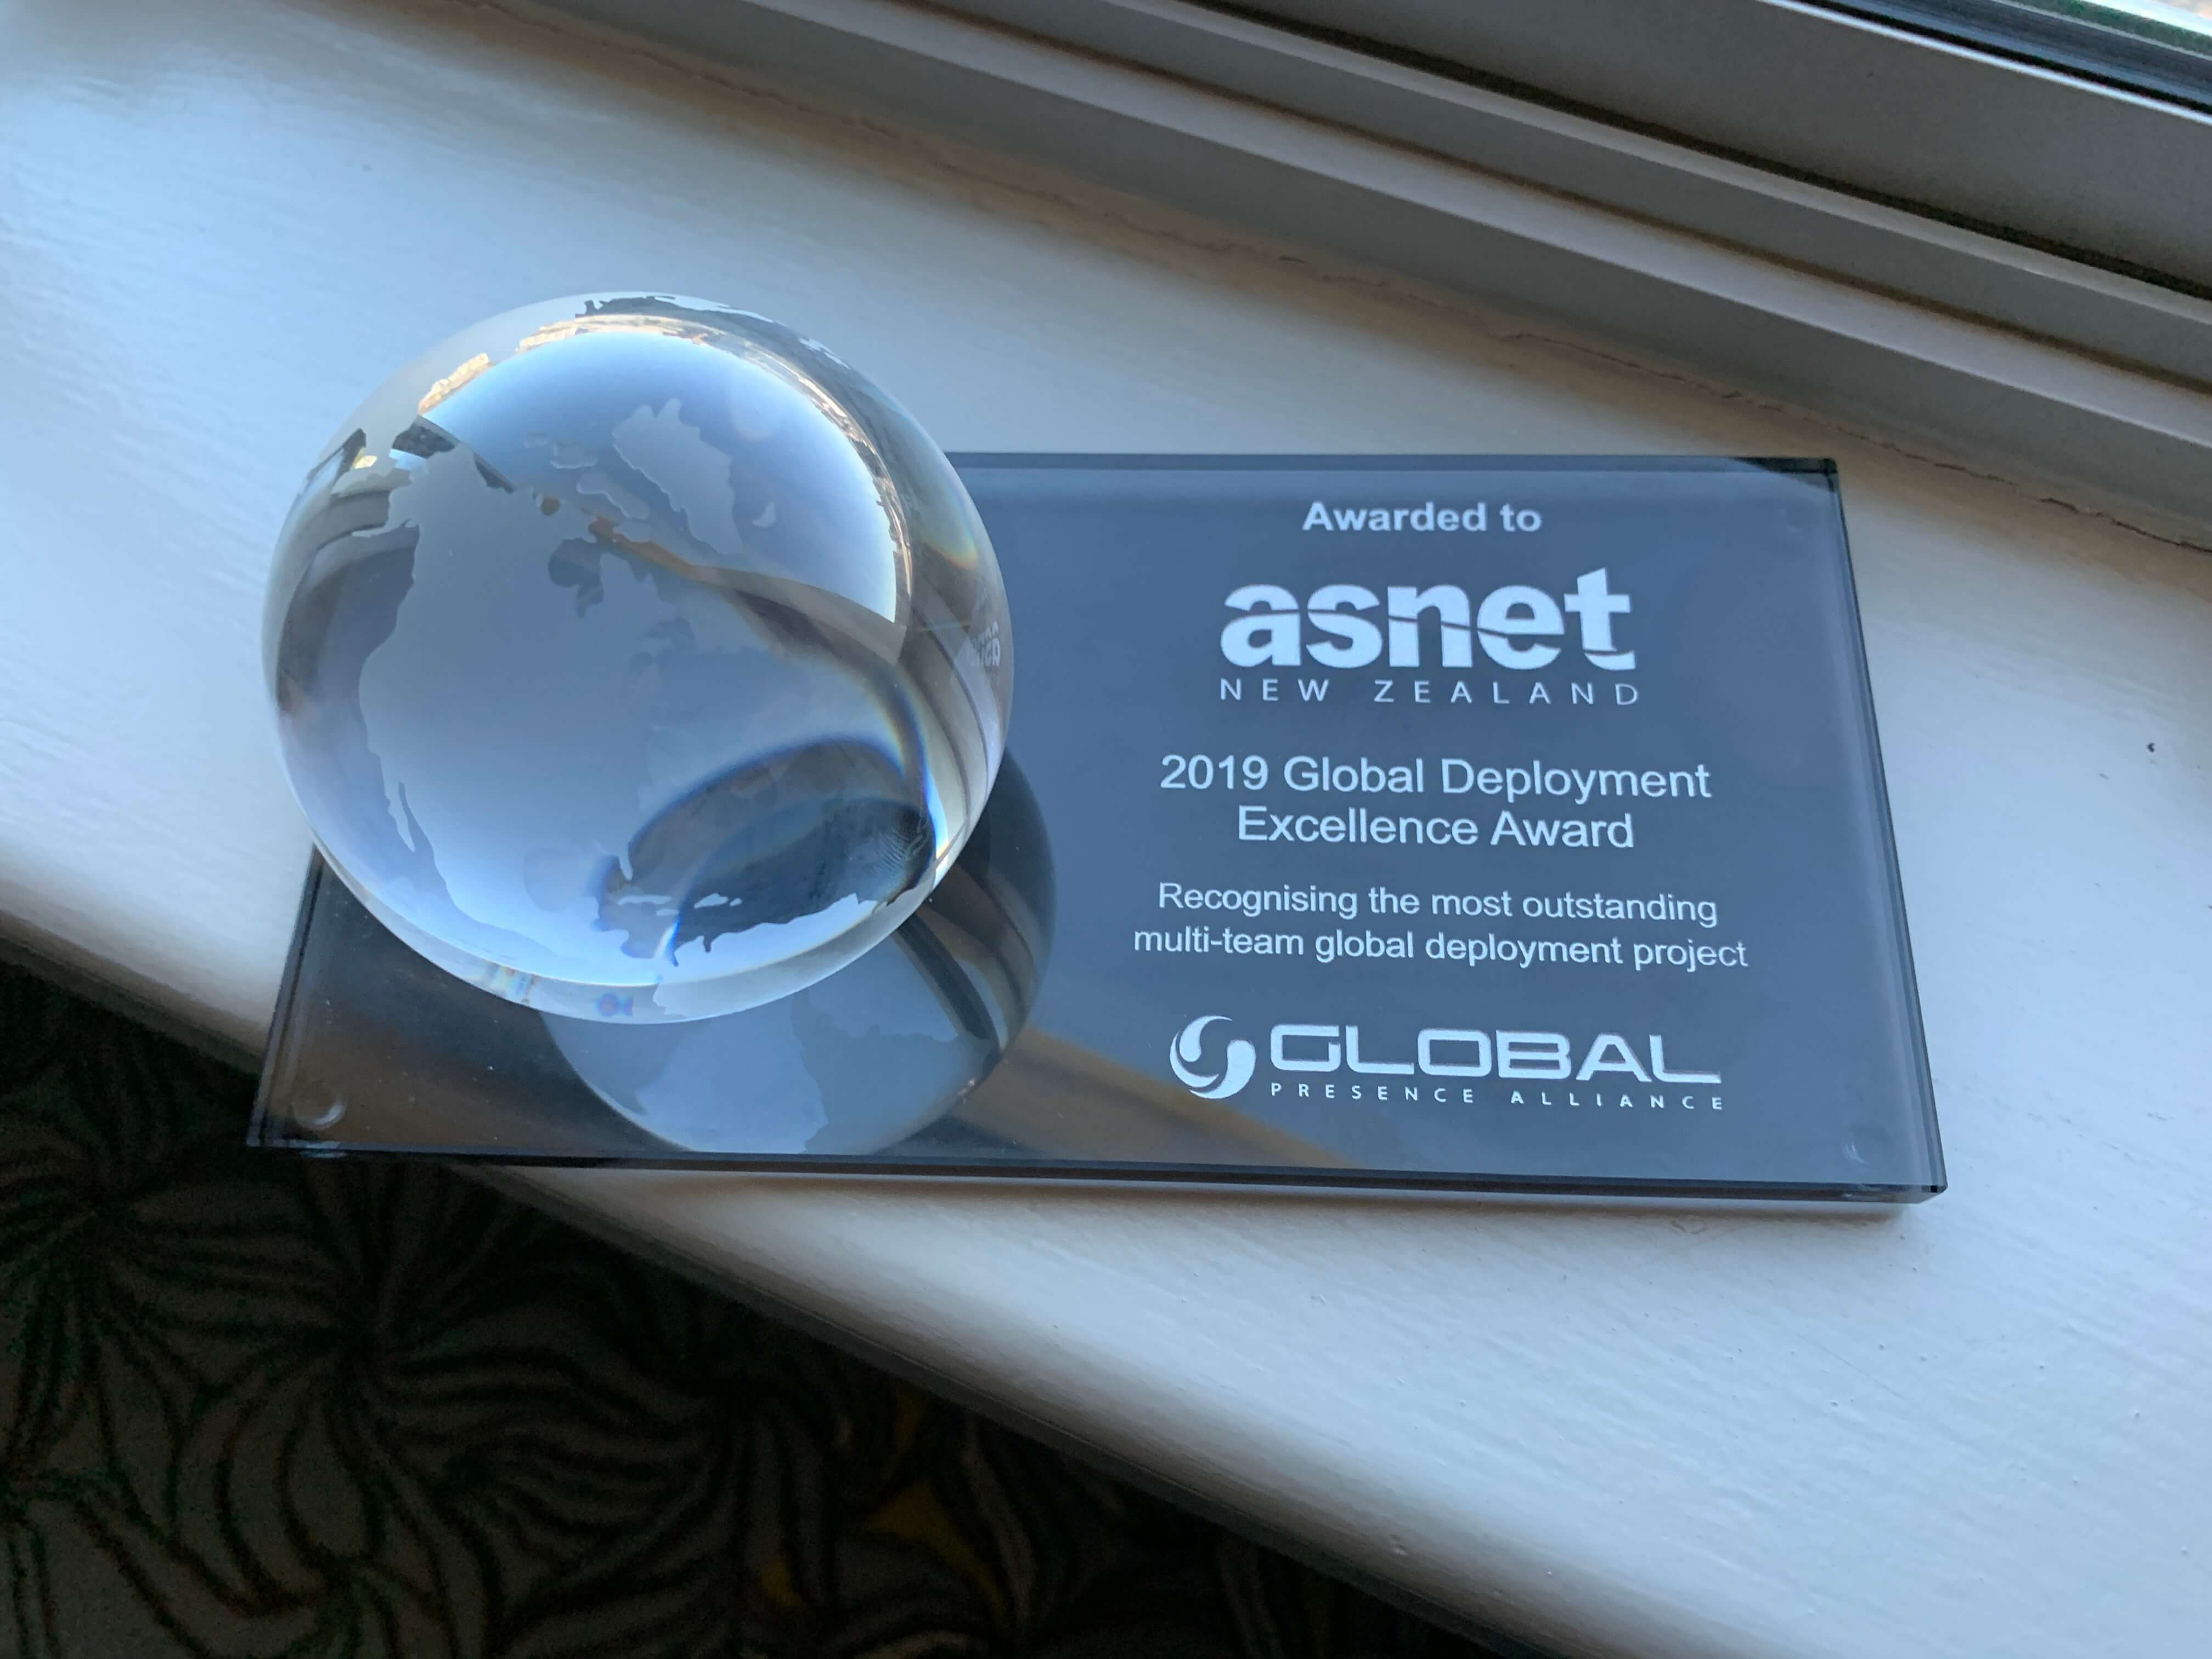 2019 Global Deployment Excellence Award